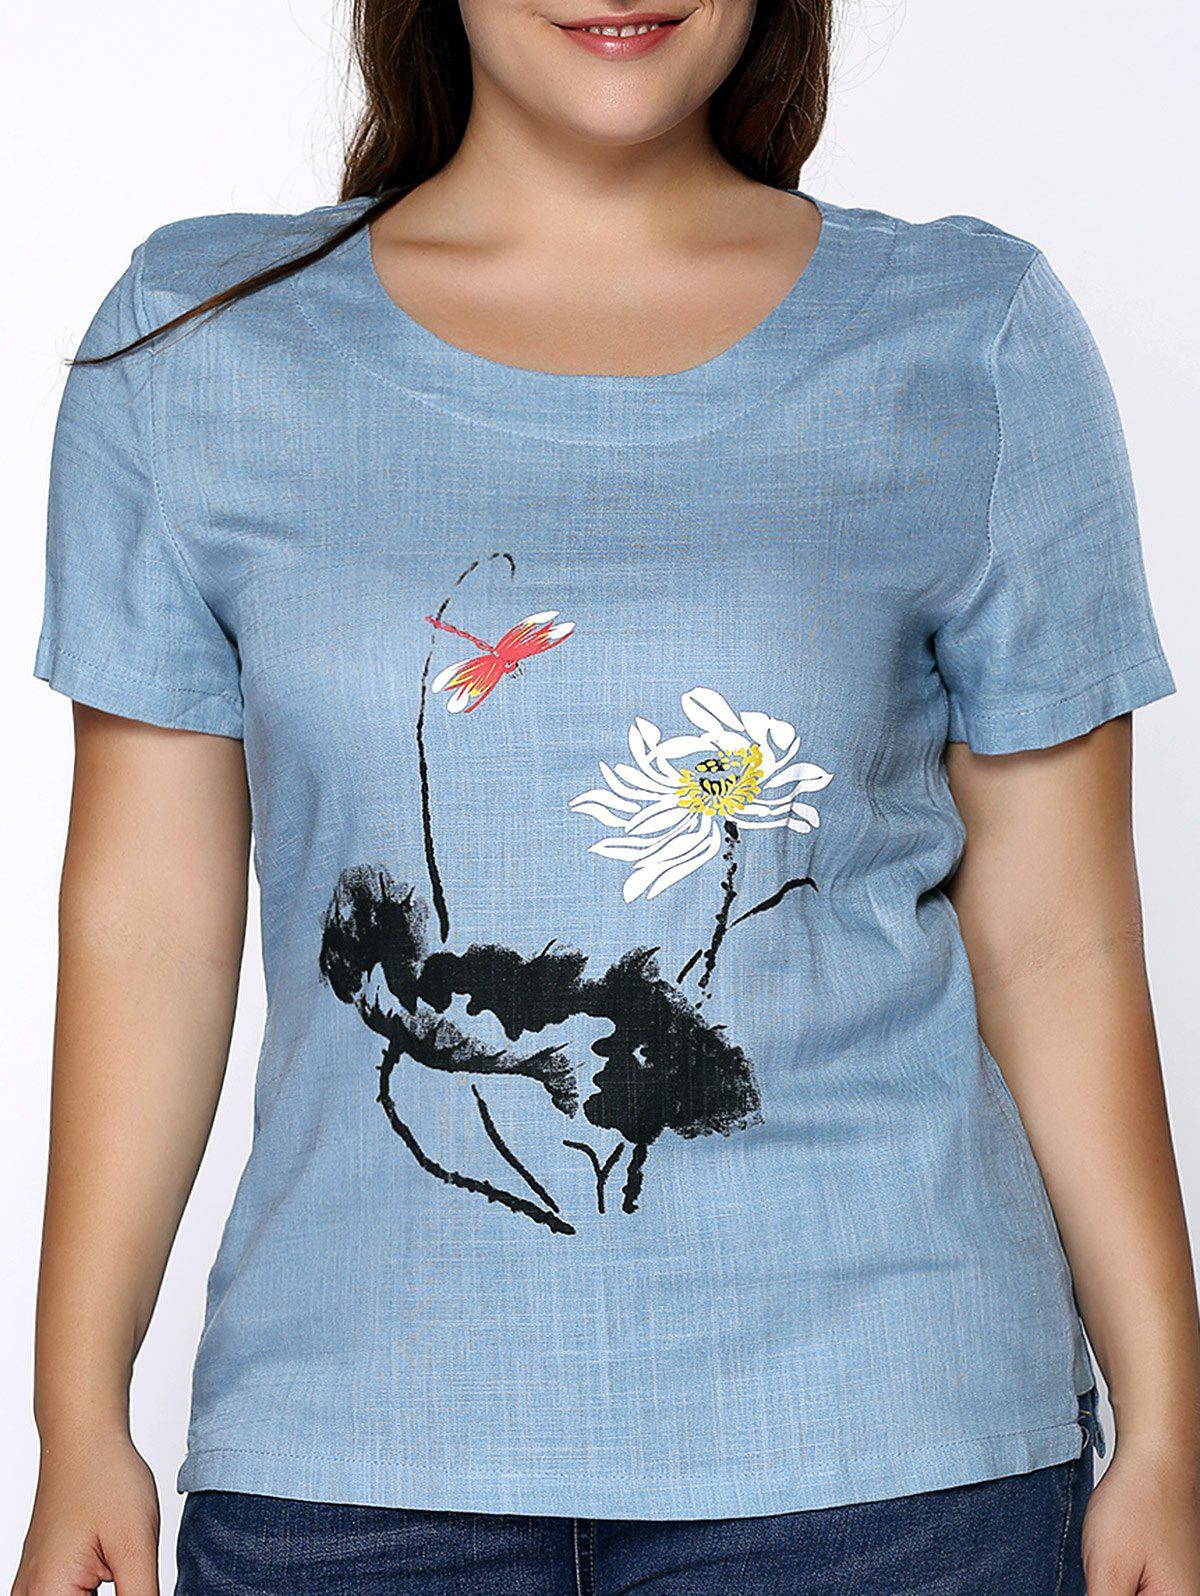 Buy Chic Round Neck Short Sleeve Plus Size Floral Print Women's T-Shirt